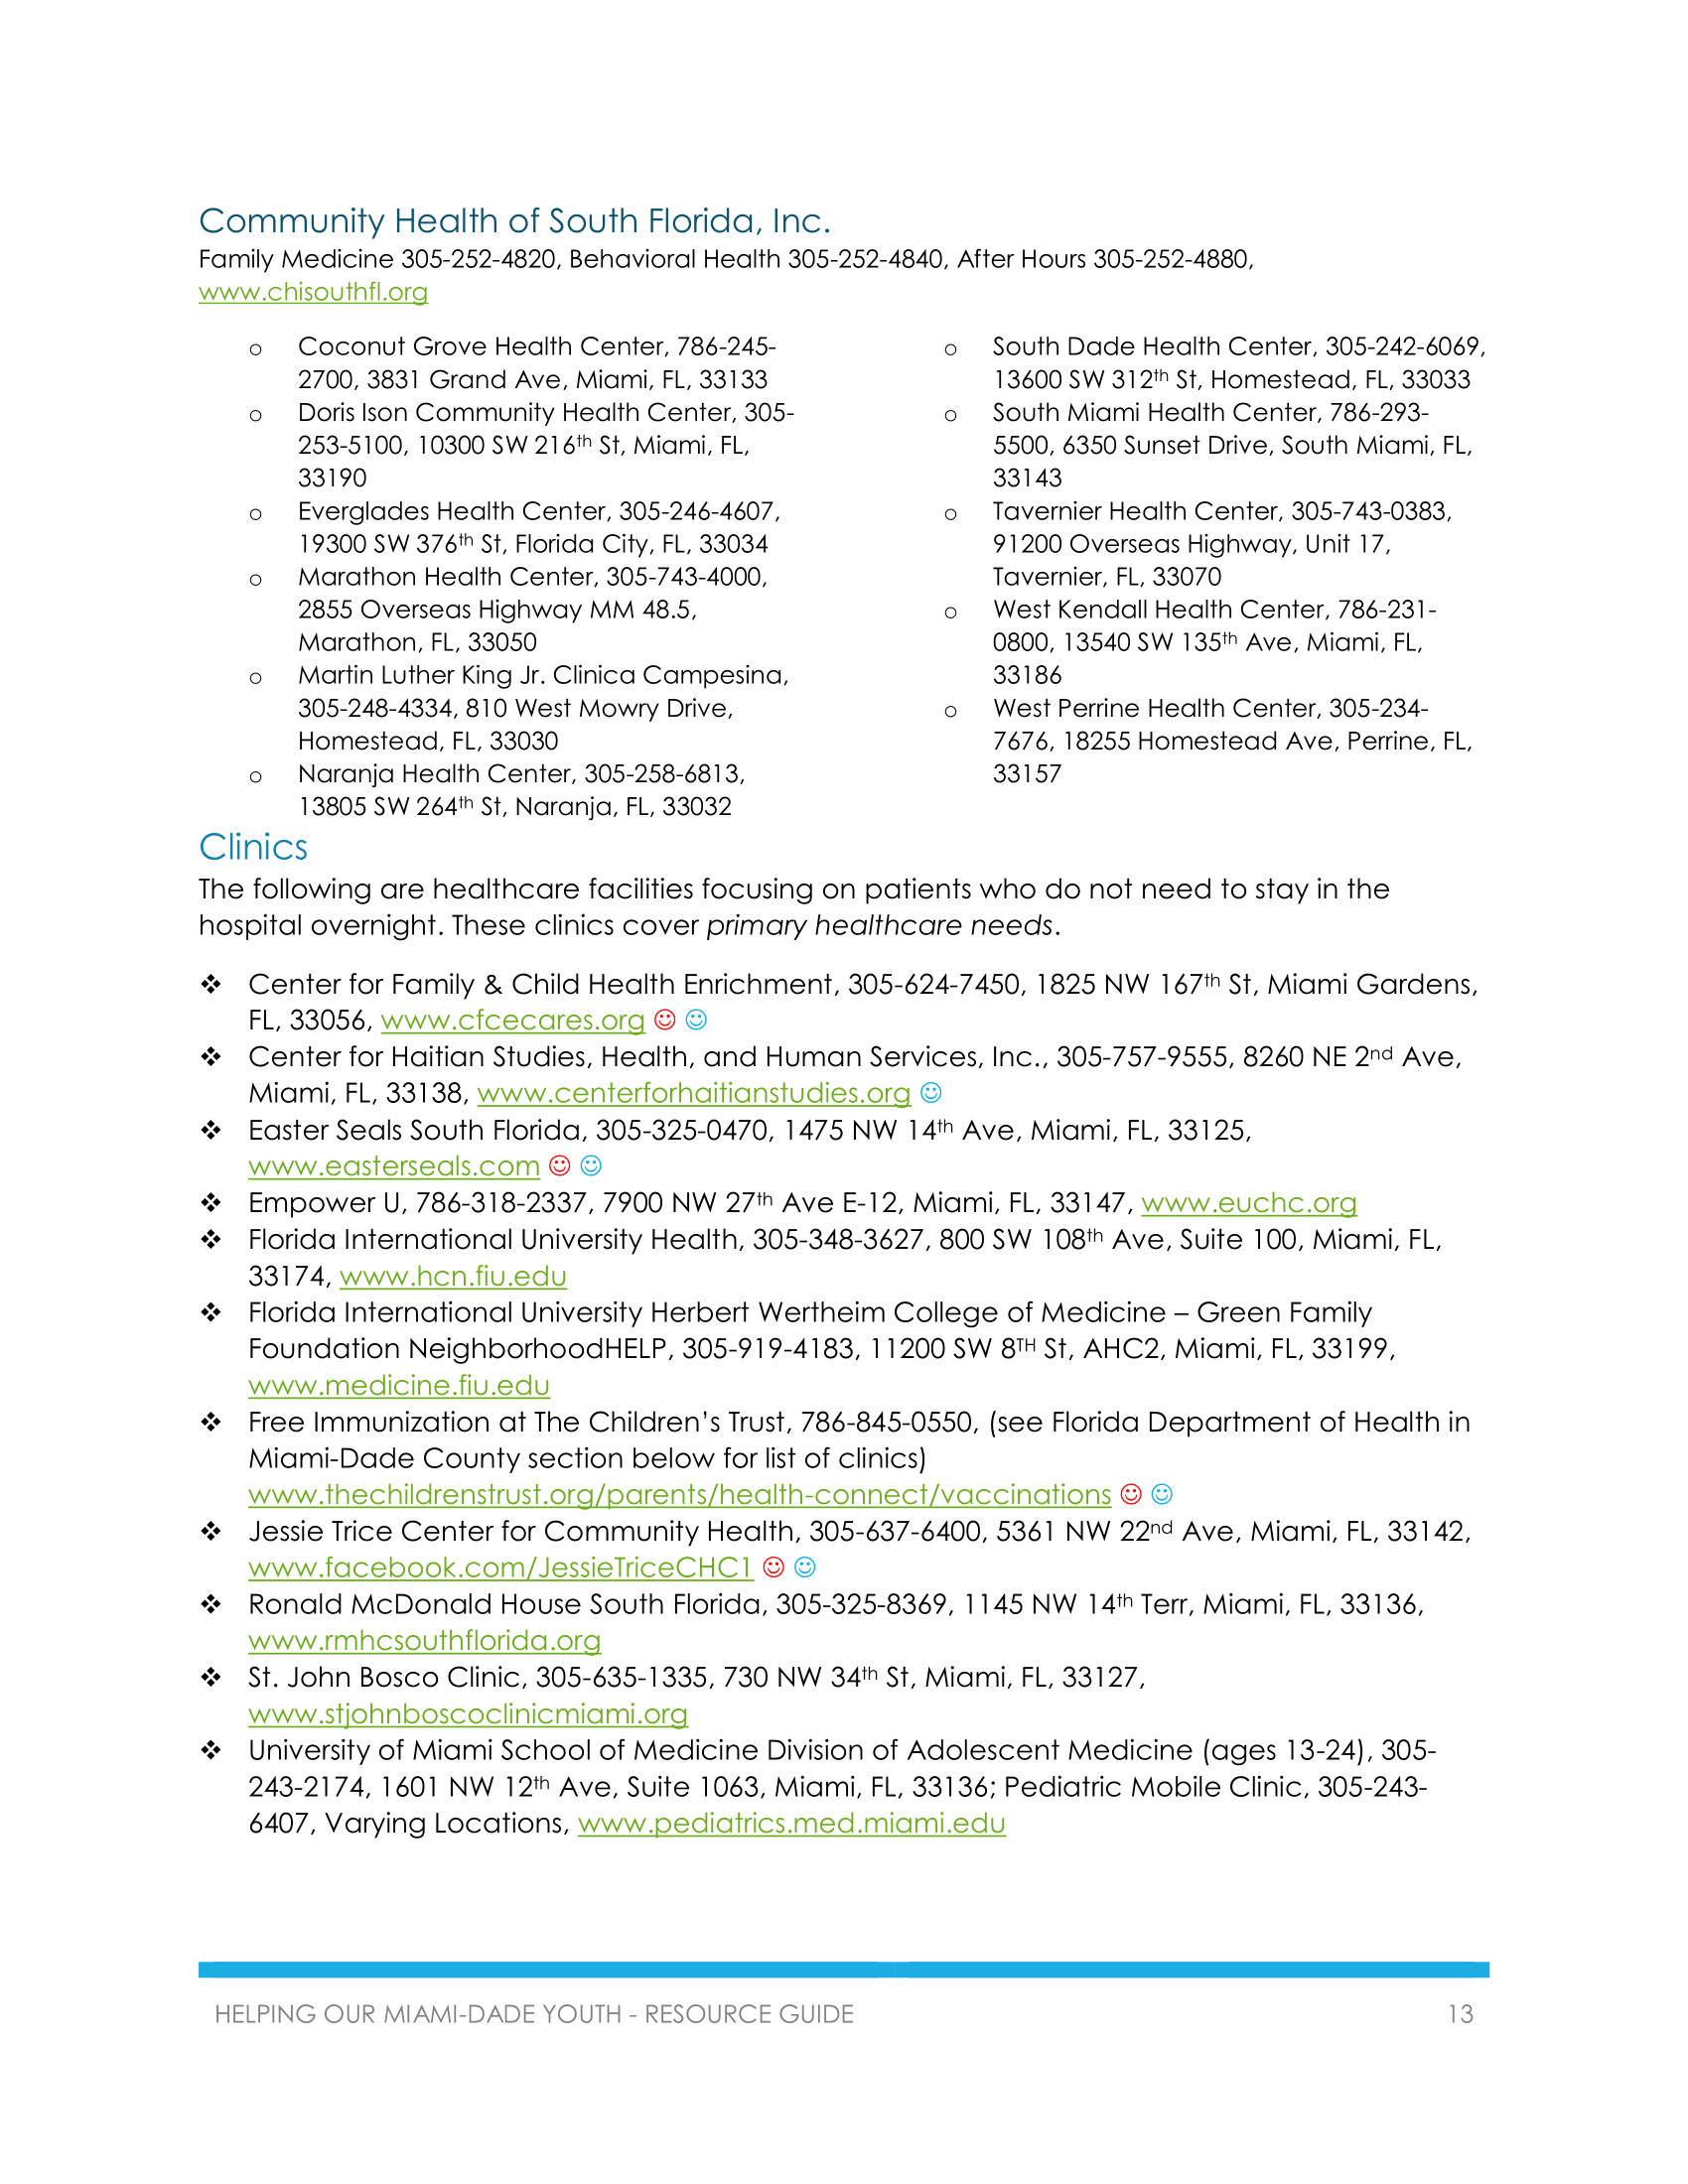 Youth Resource Guide - May 2018-18.png